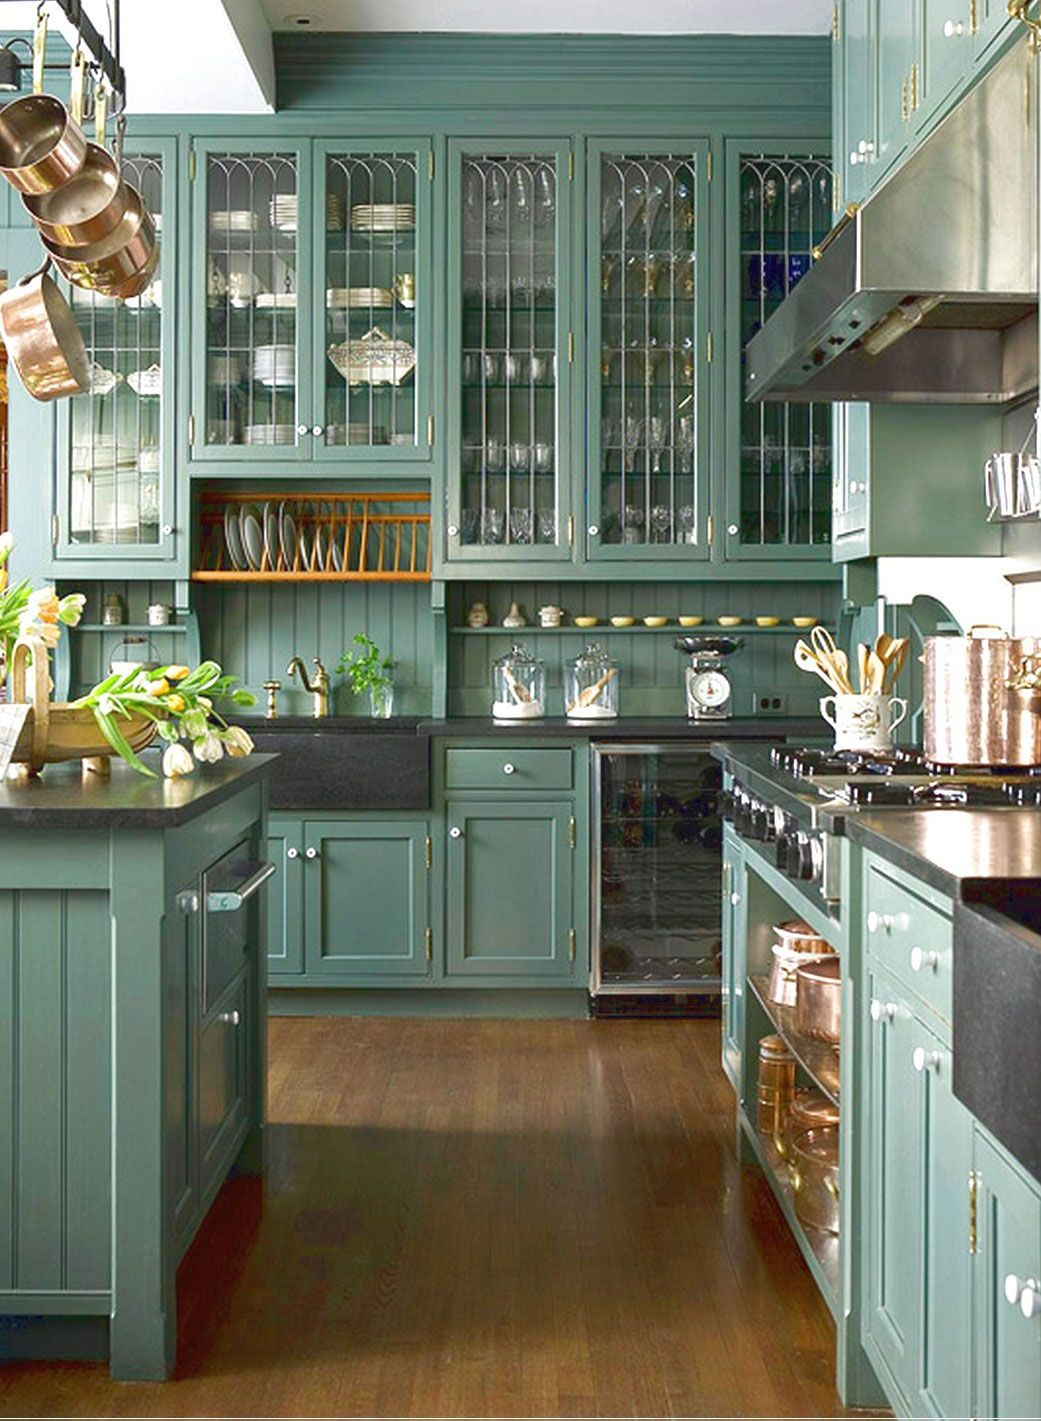 What Color Kitchen Cabinets Go With Black Countertops Google - Green kitchen cabinets with black countertops